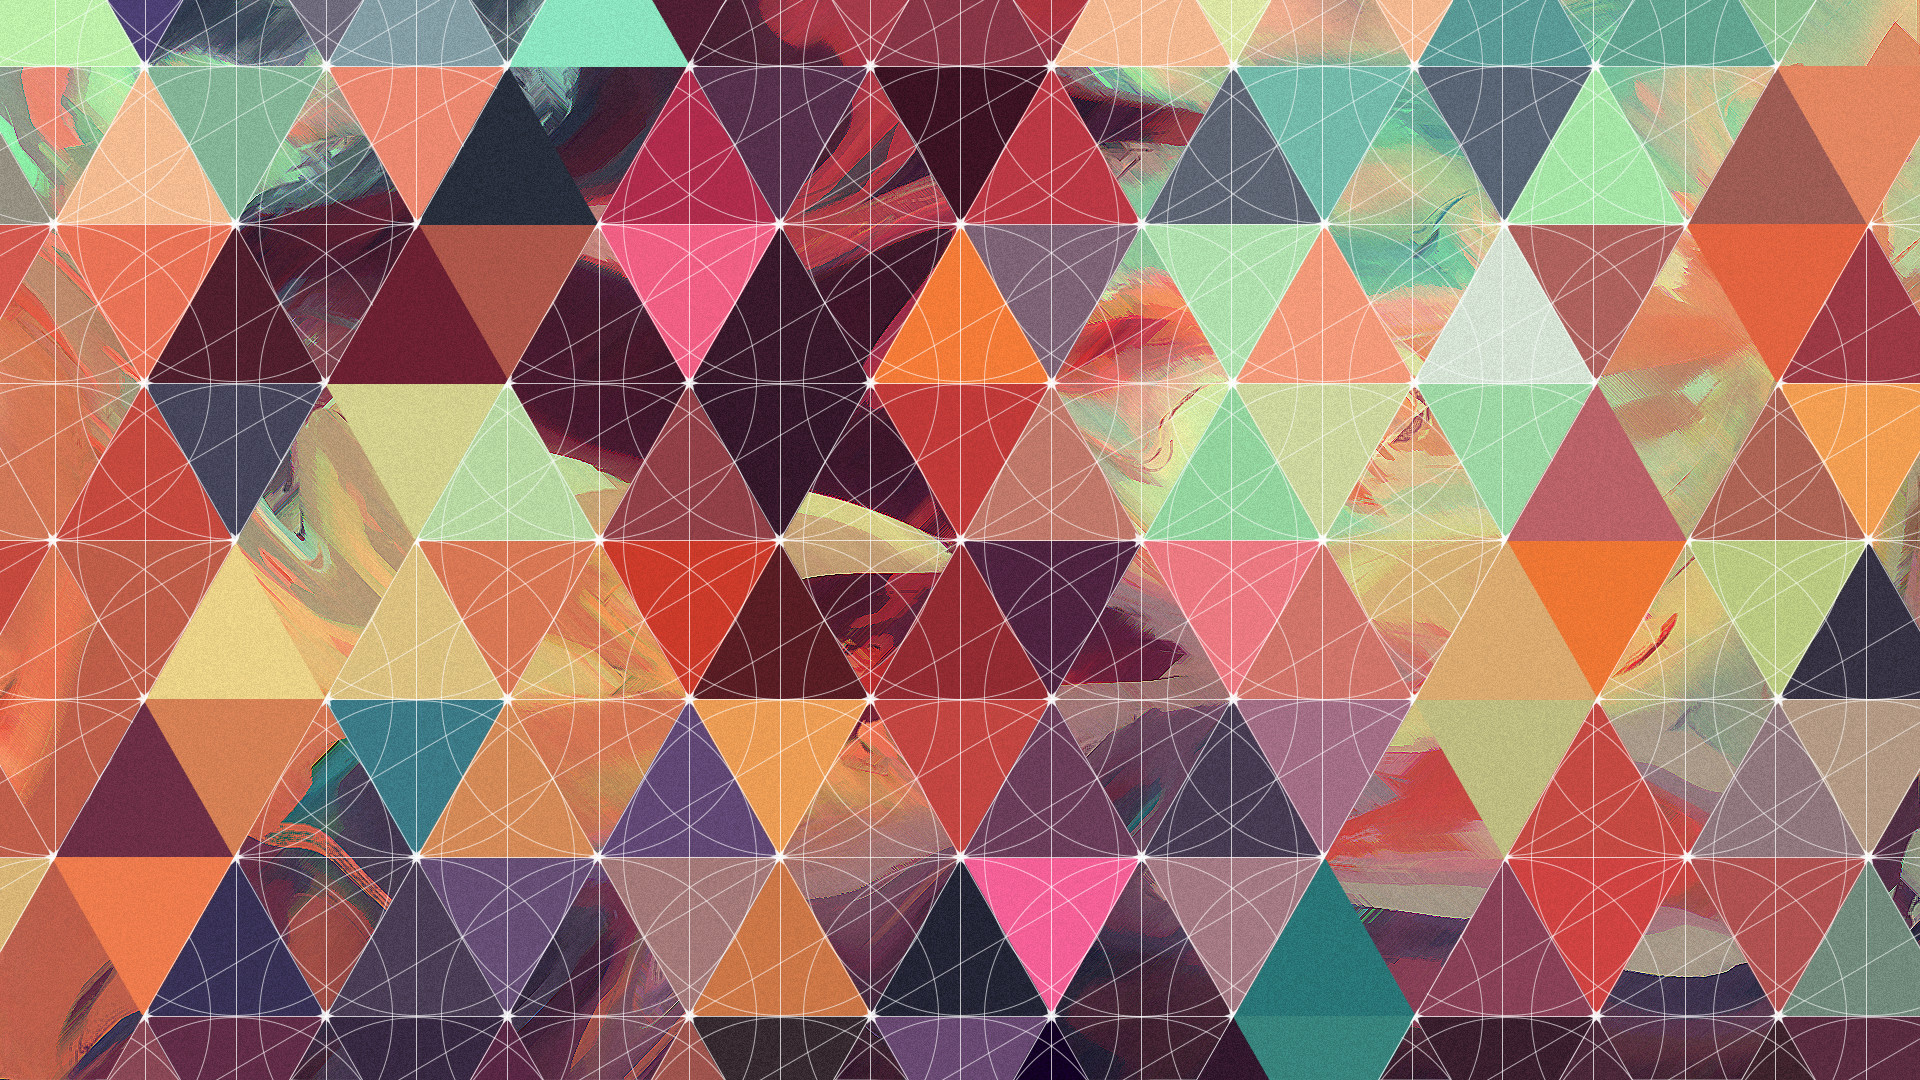 1920x1080 I made a geometric/abstract wallpaper today ()